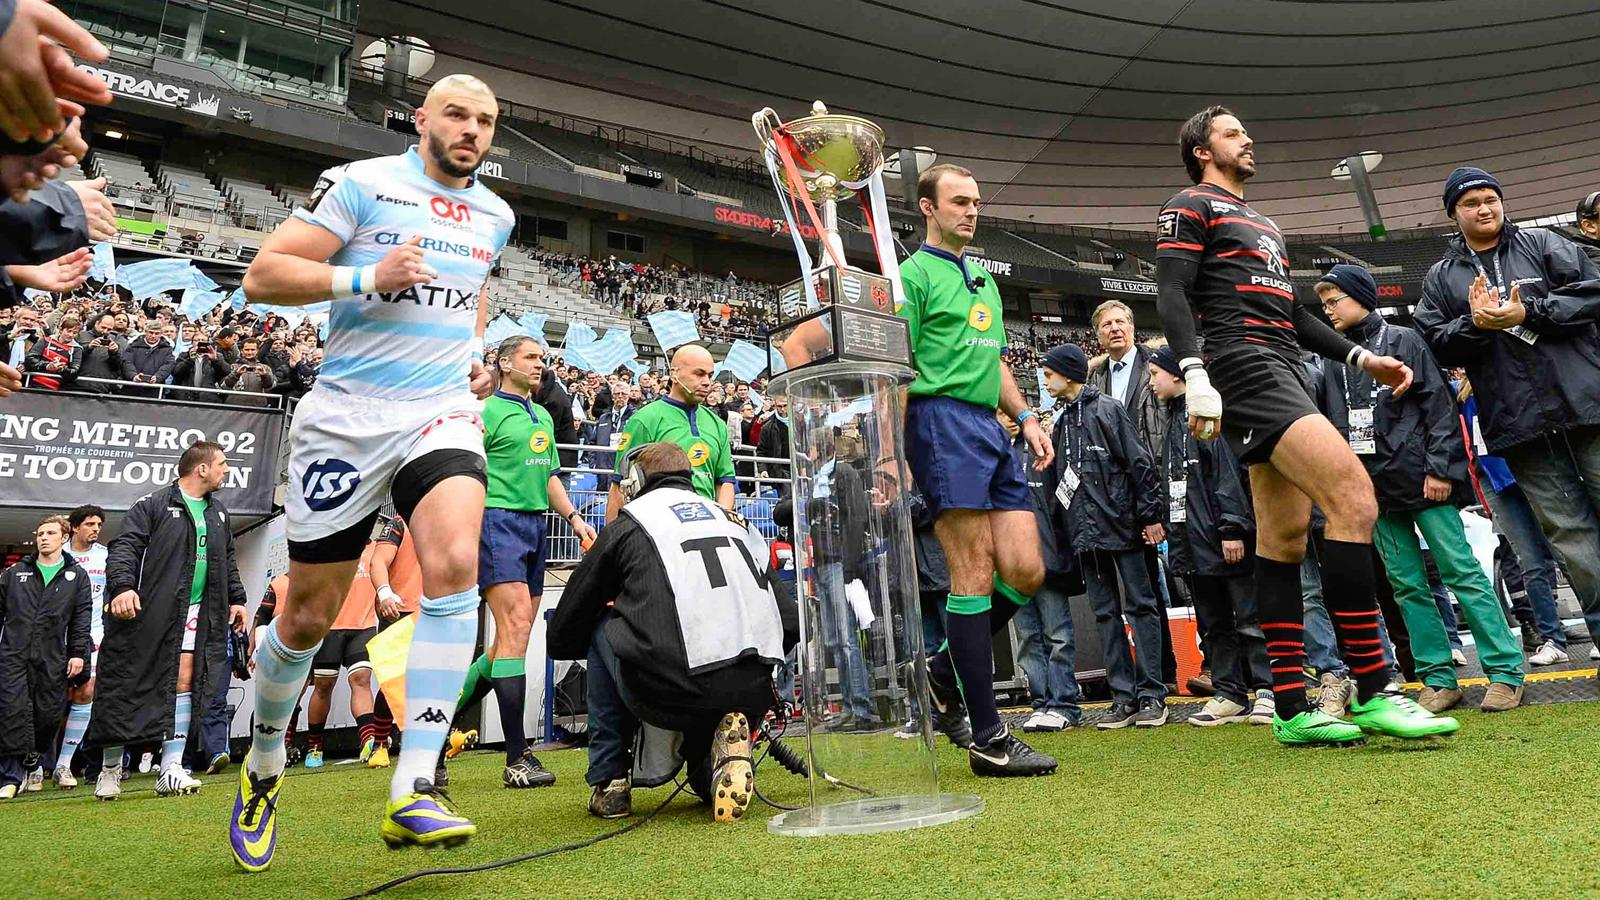 Benjamin LAPEYRE - 25.01.2014 - Racing Metro 92 / Toulouse - 17eme Journee du Top 14